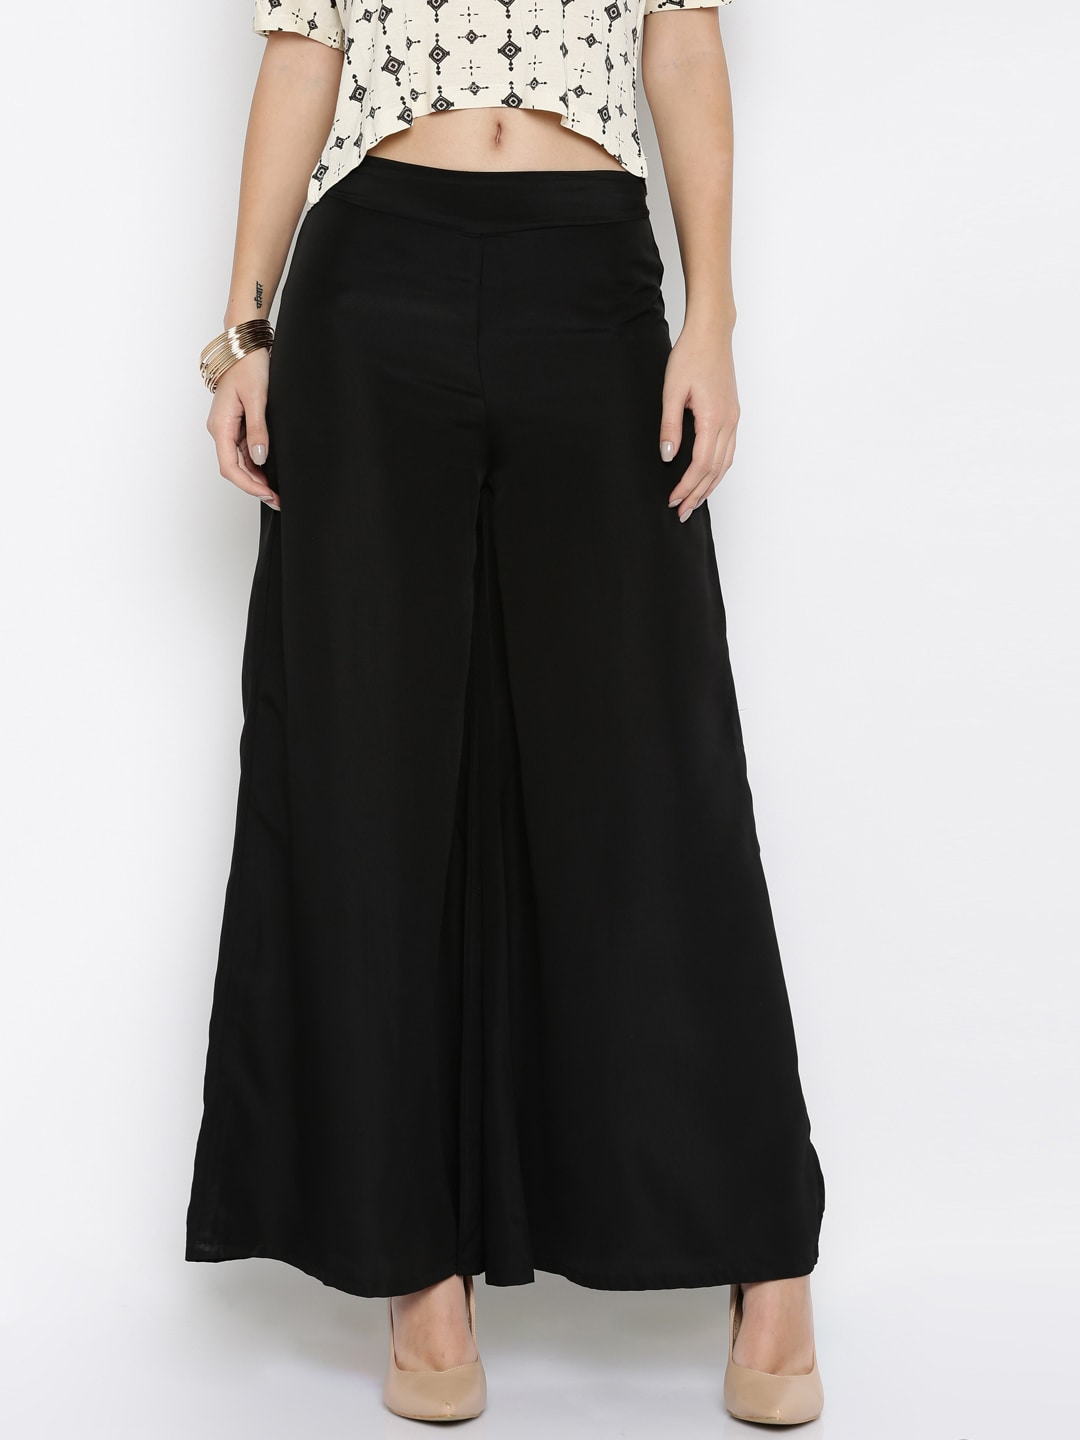 palazzo pants for women wwwpixsharkcom images